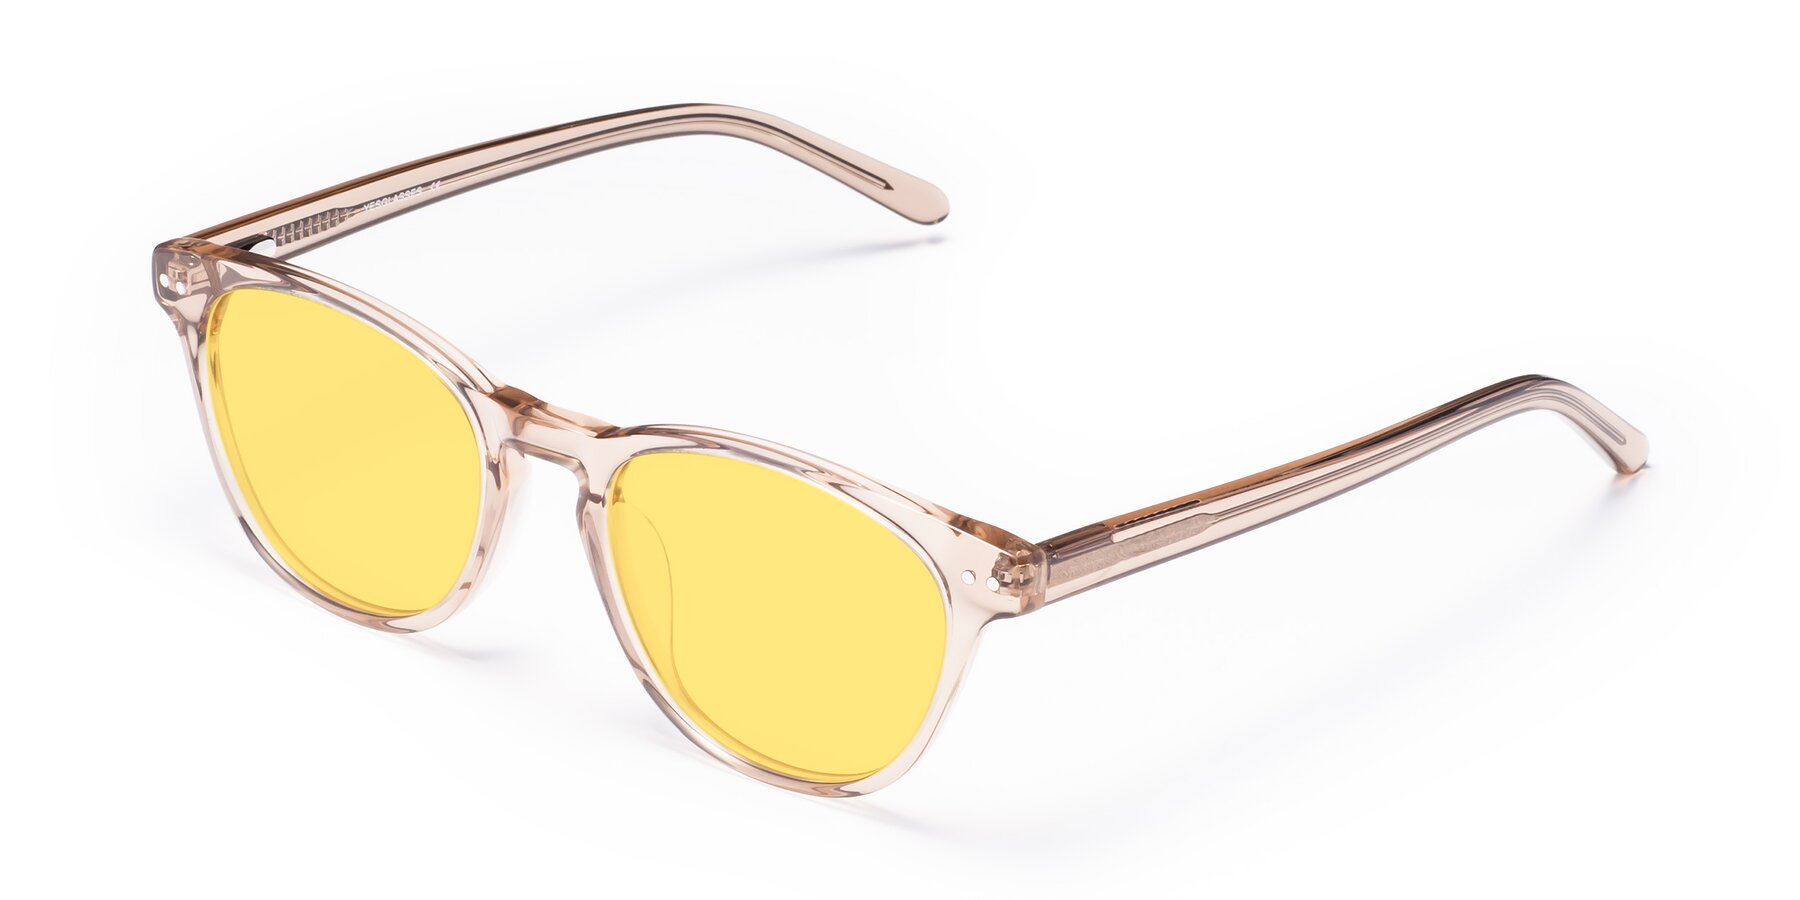 Angle of Blaze in light Brown with Medium Yellow Tinted Lenses